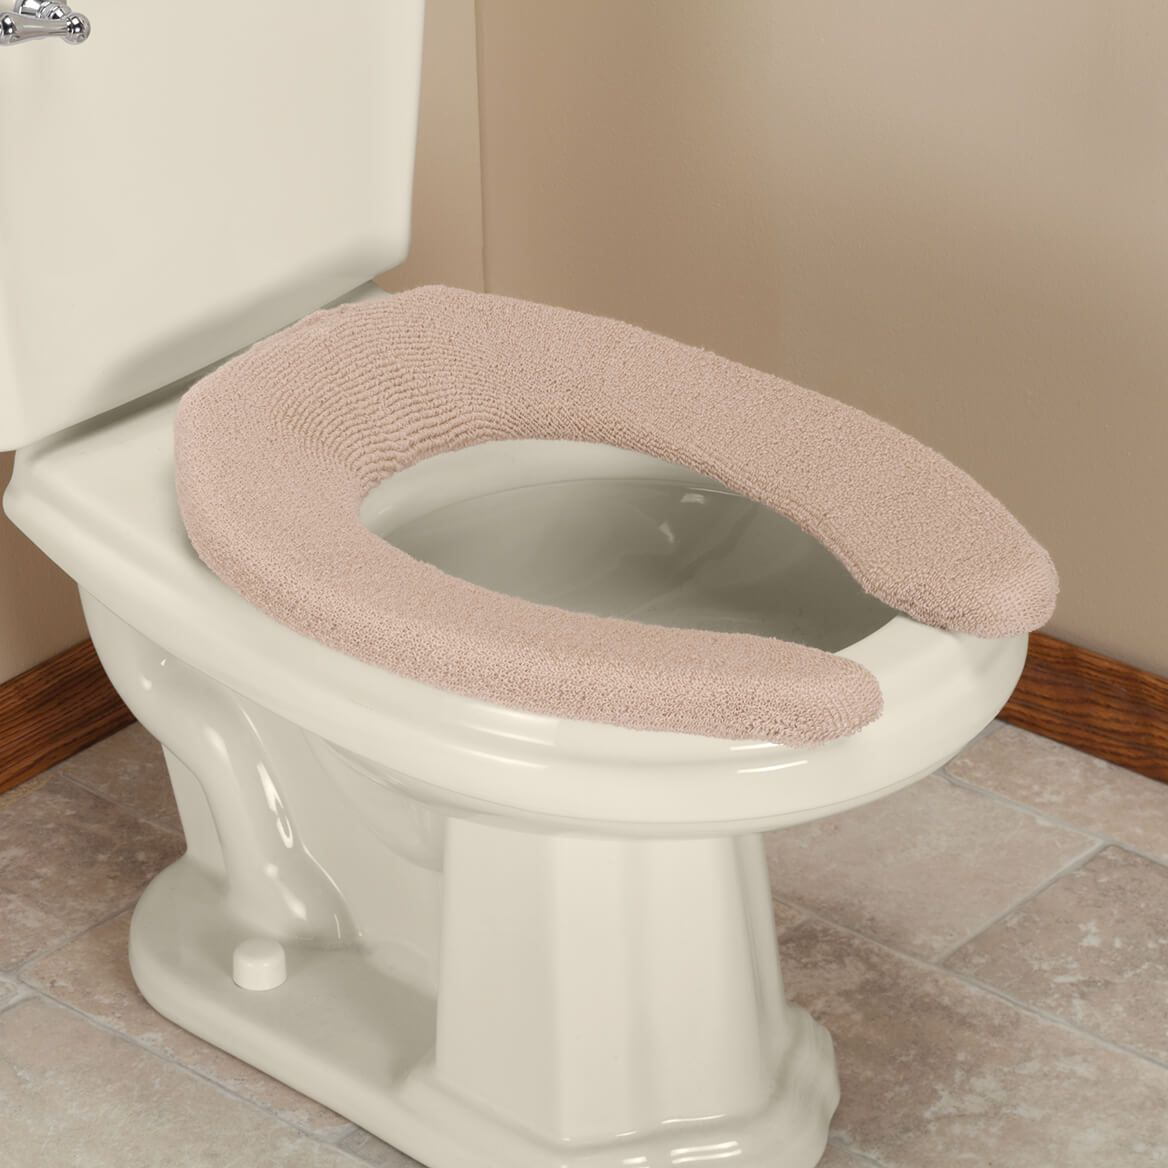 Elongated Toilet Seat Cover-339951